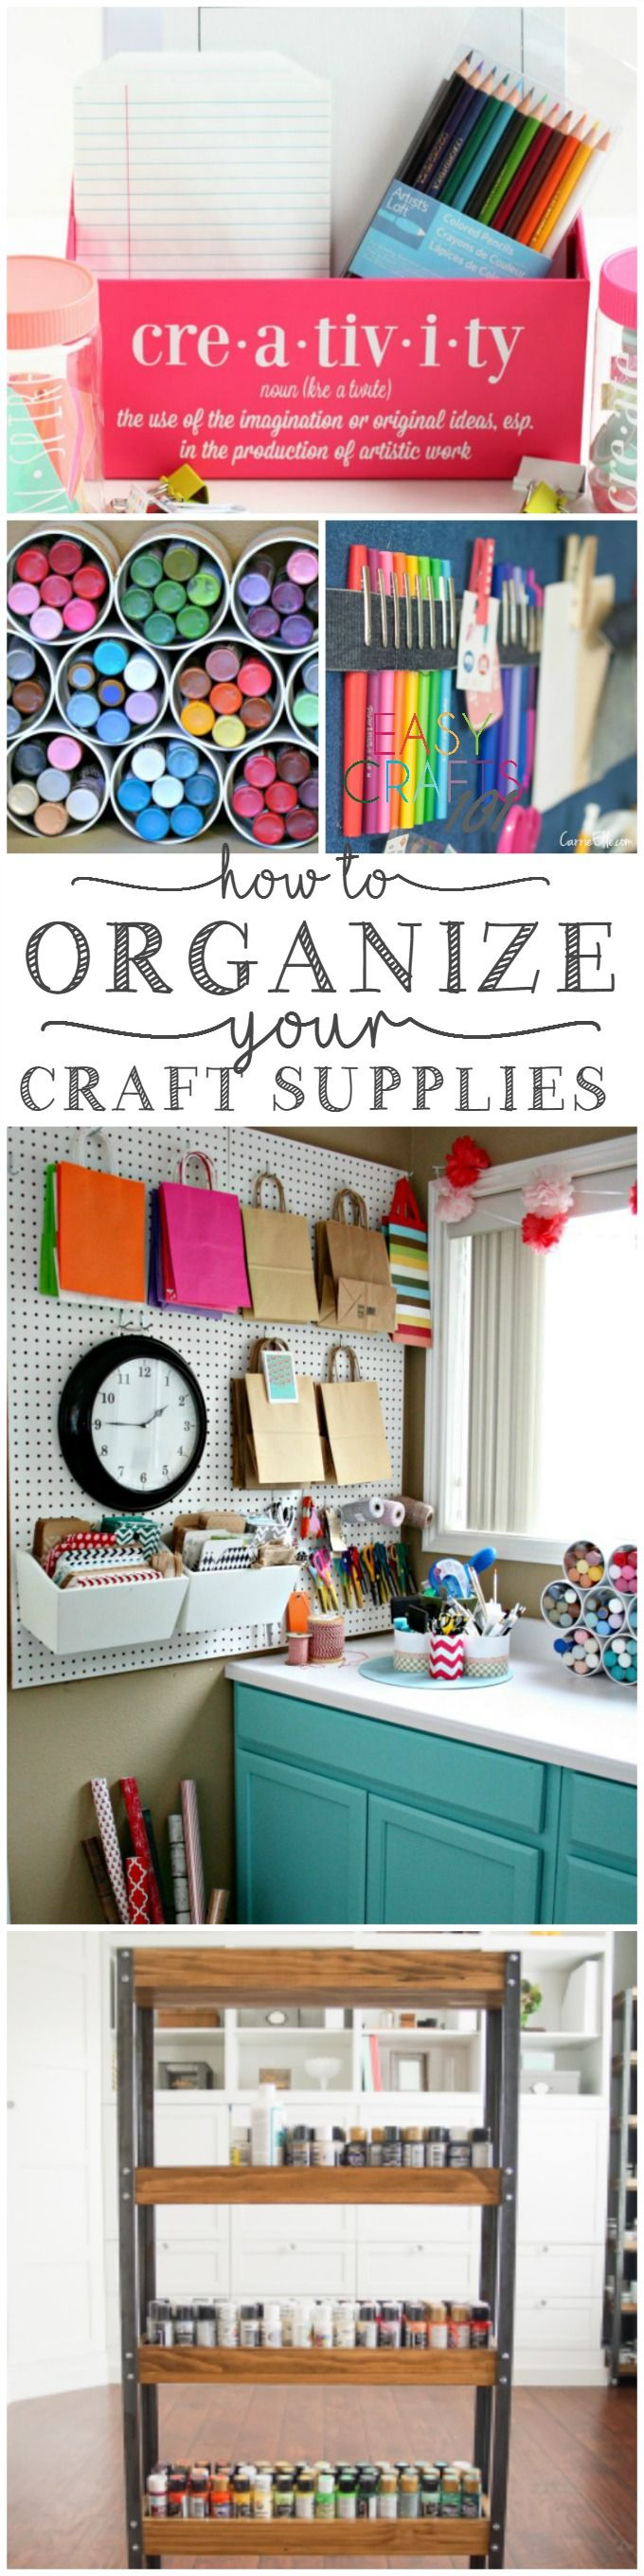 You know what I wish I had in my house? A craft room. Someday. But until then, I have a fantastic office that doubles as a craft storage space. Recently, in an attempt to organize it all a bit, I found myself in search of great craft room organization ideas and inspiration. Of course, I didn't have to go far to find some amazing ideas (thank you,